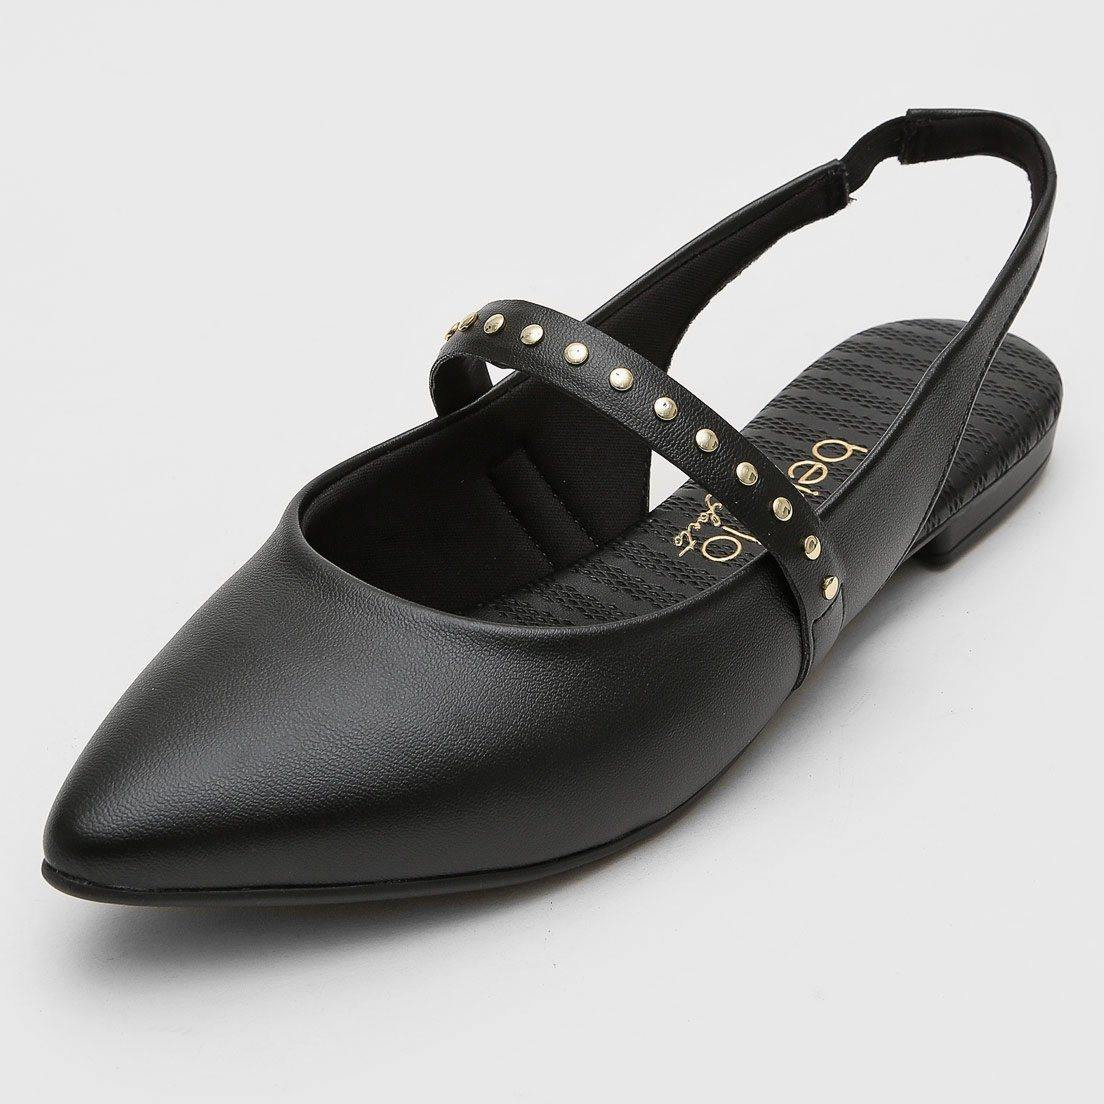 Beira Rio 4134-470 Pointy Toe Slingback Flat in Black Napa